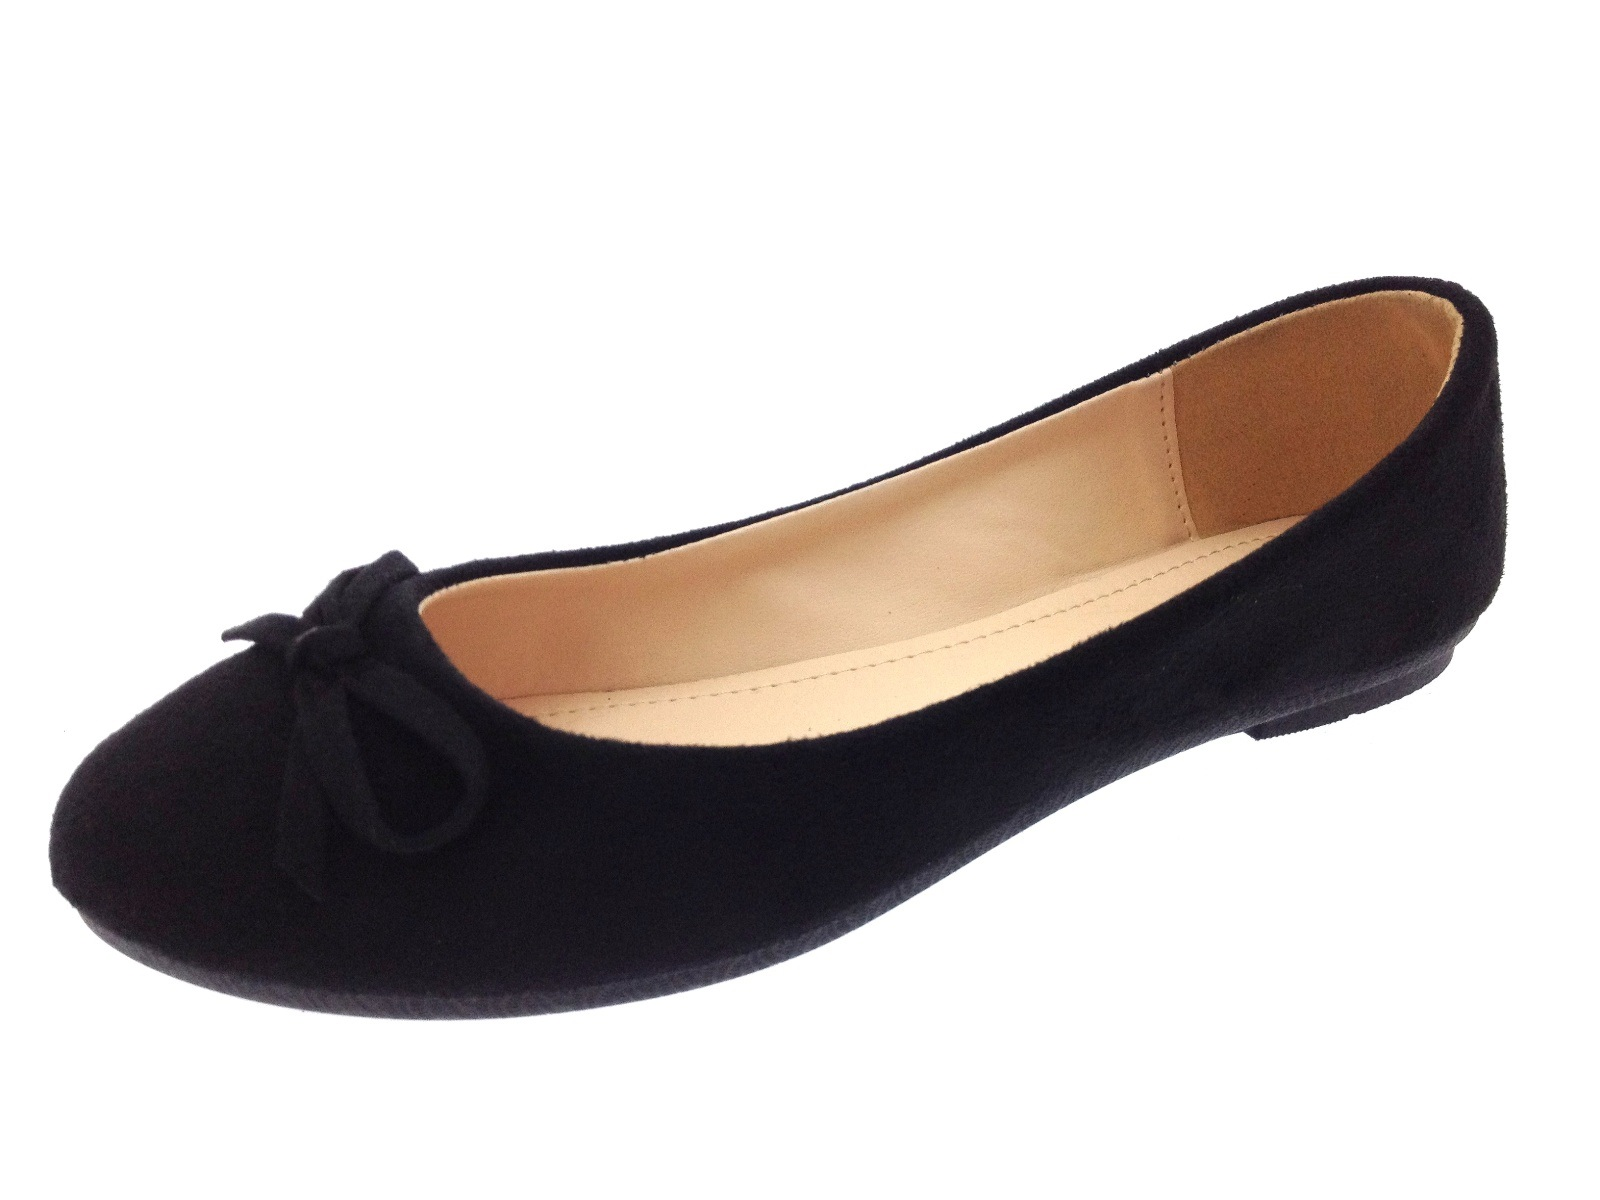 Womens Faux Suede Dolly Ballet Pumps Flat Casual Loafers ...